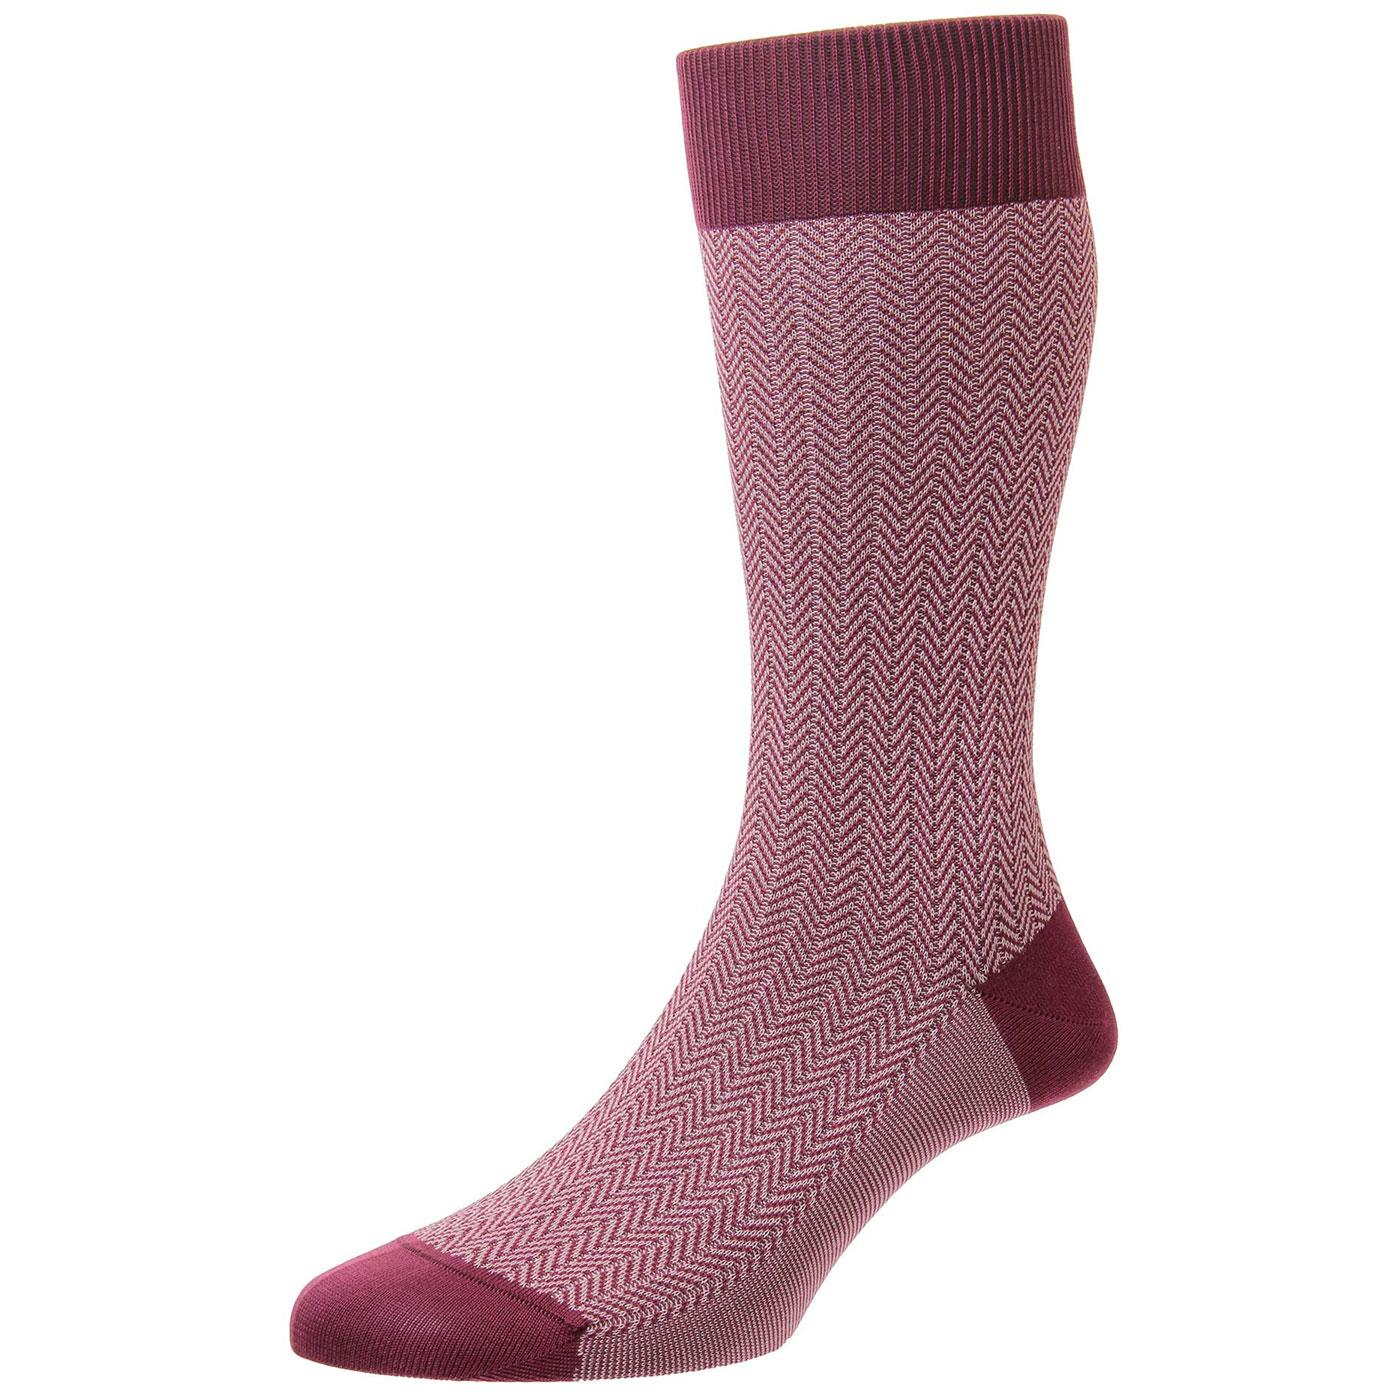 + Fabian PANTHERELLA Men's Mod Herringbone Socks B